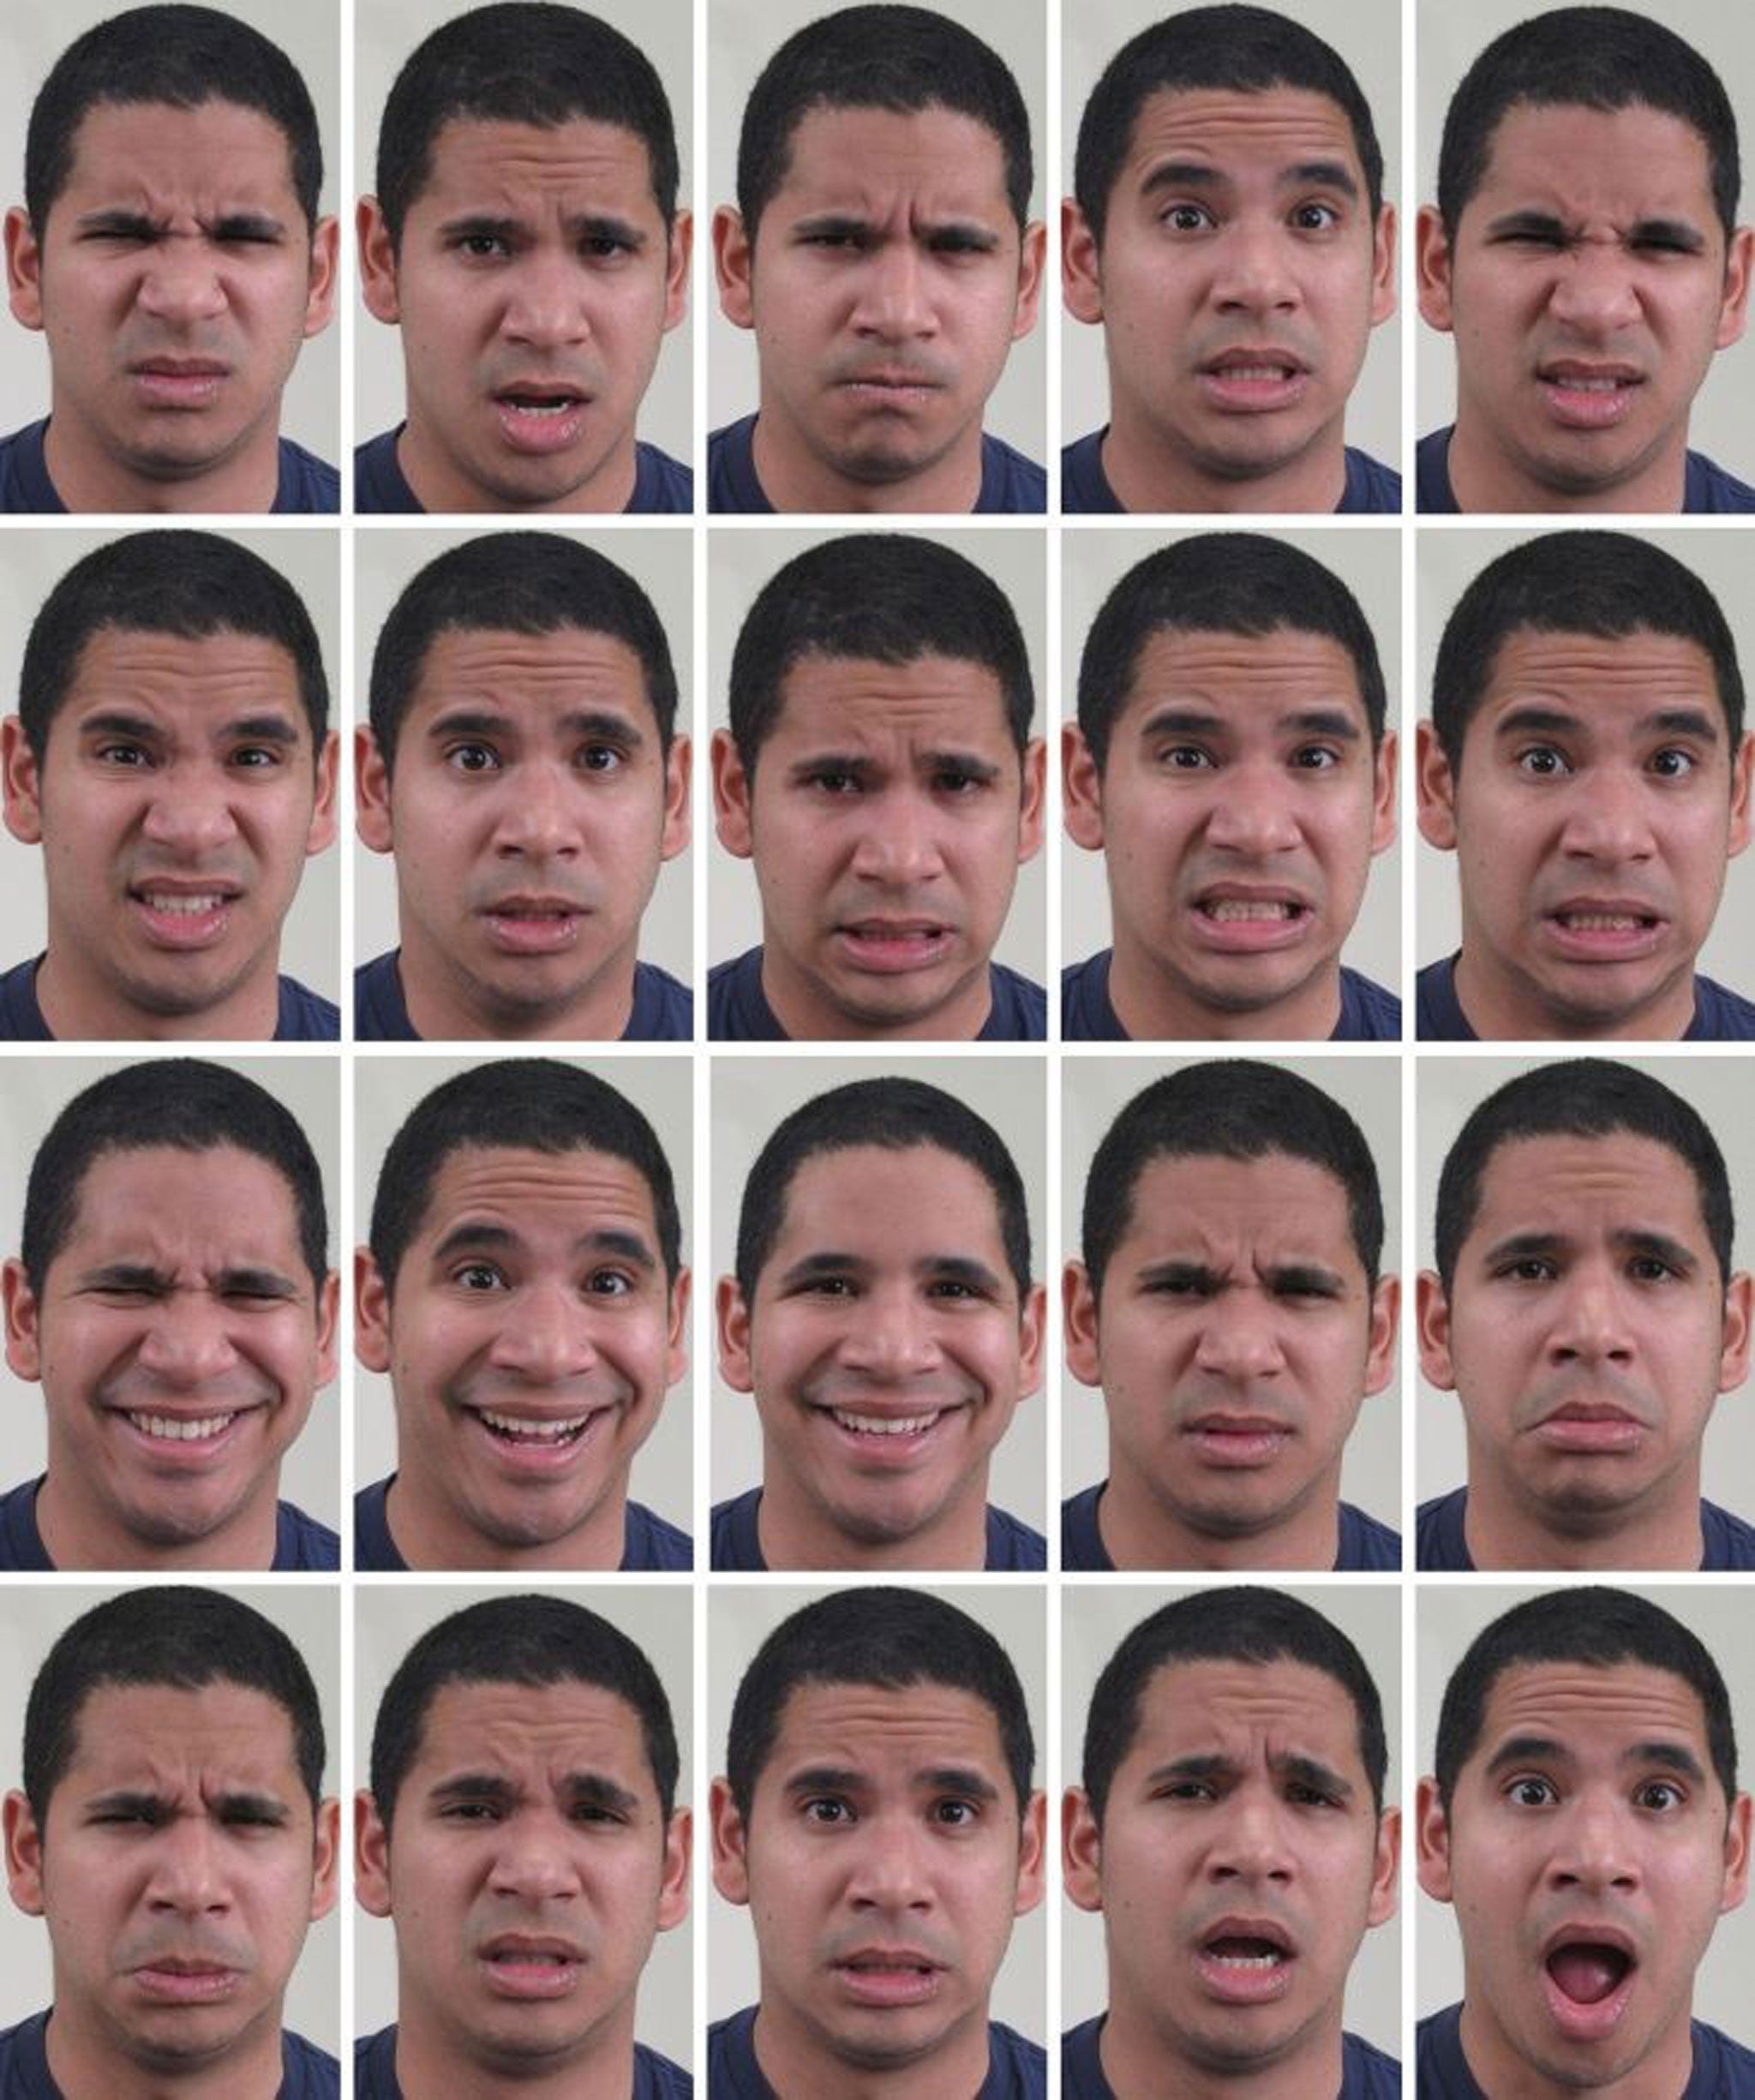 facial expressions dating The full-range of human emotion (appalled is not shown) pa if you ever have trouble reading someone's mood it could be because you haven't learned how to interpret the full range of human emotion from happy to disgustedly surprised, scientists have identified 21 different facial expressions.